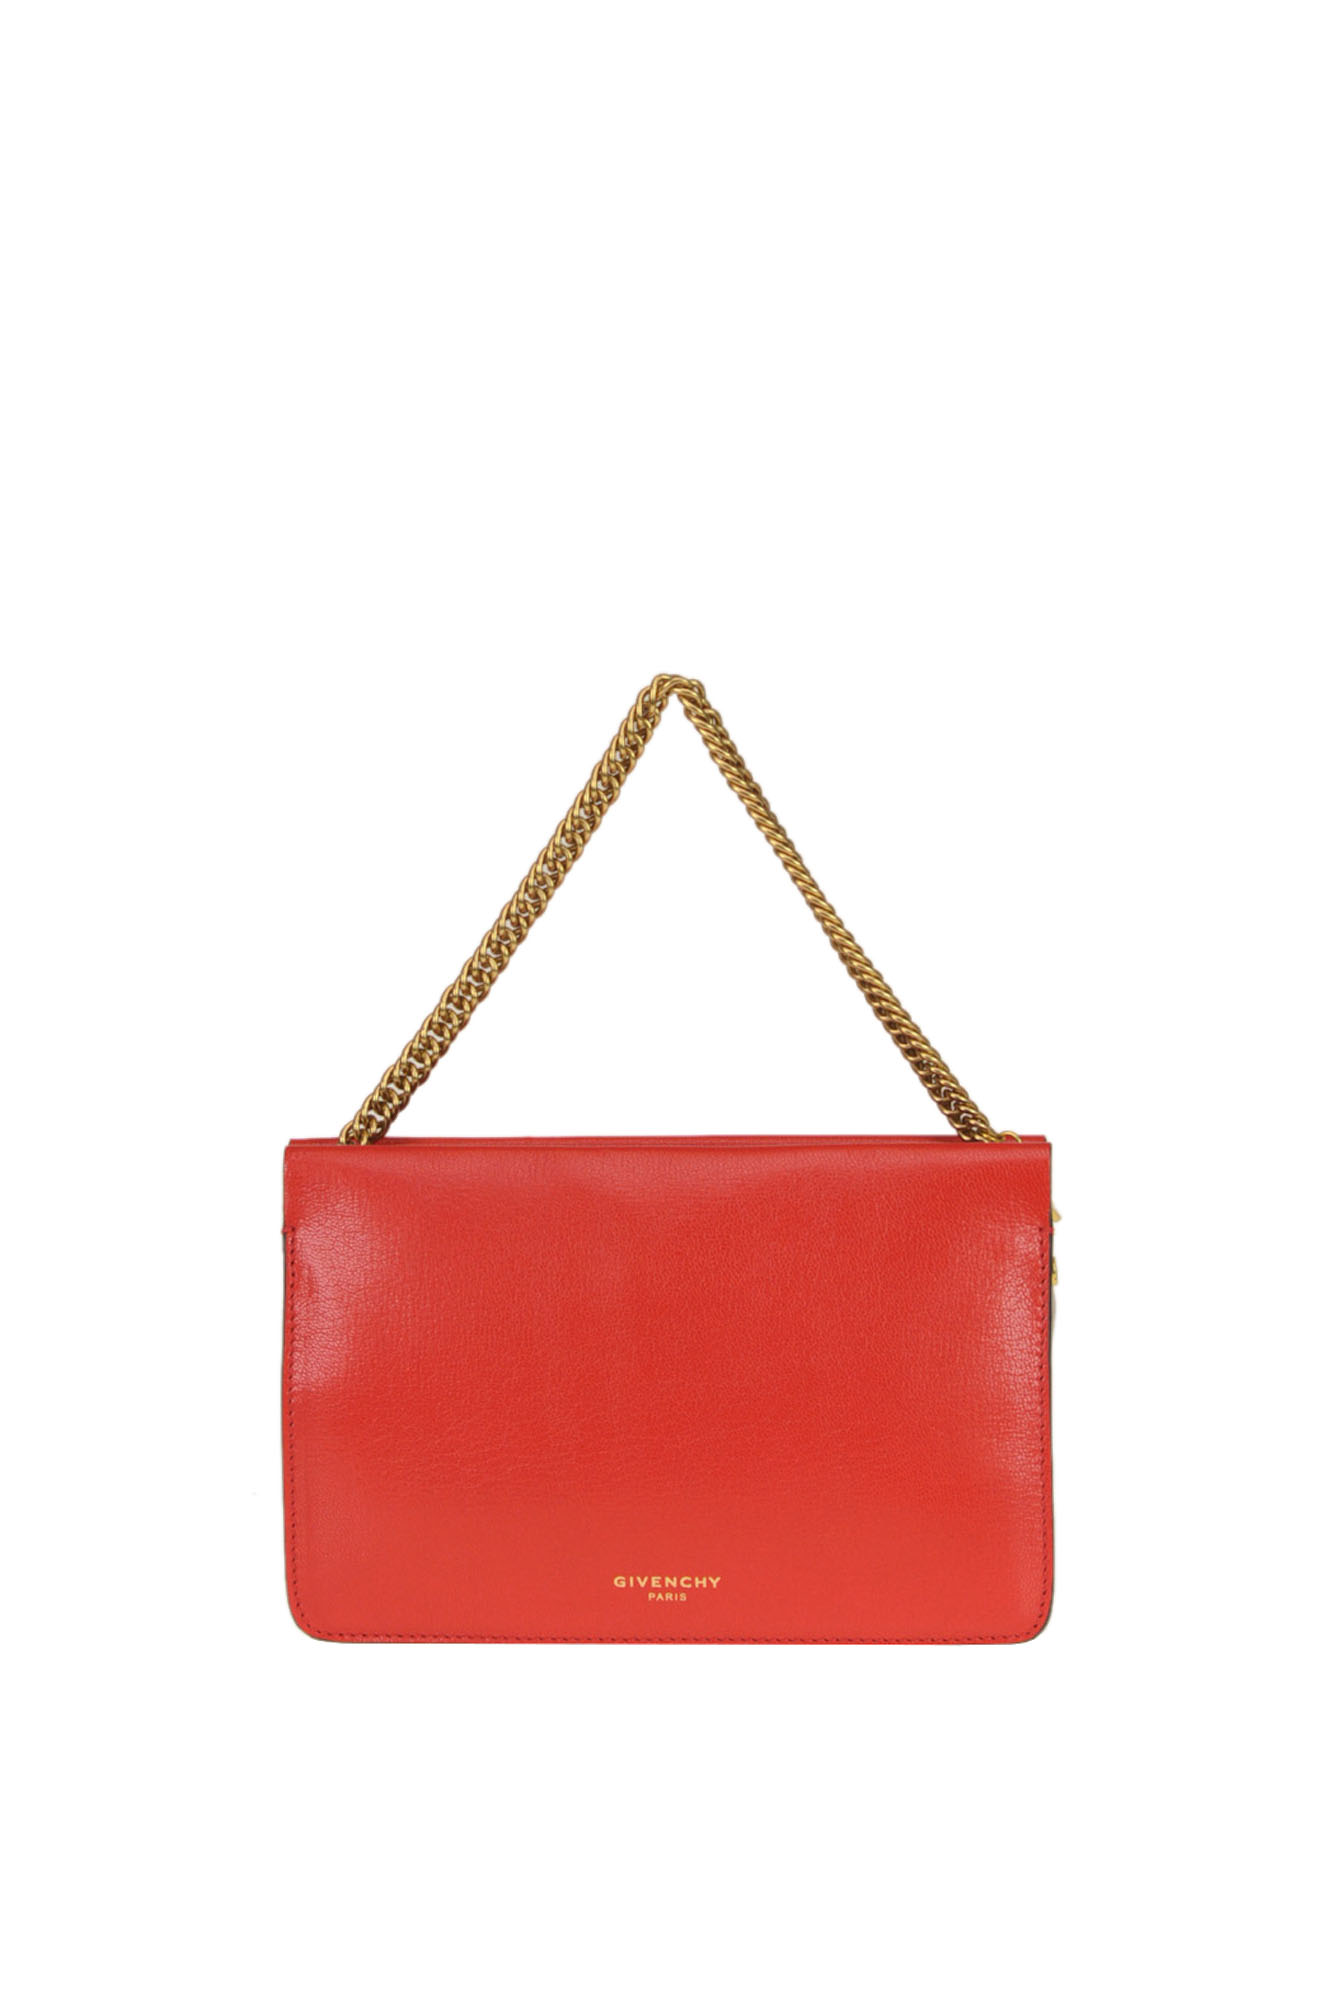 Givenchy 'Cross 3' Crossbody Bag In Red